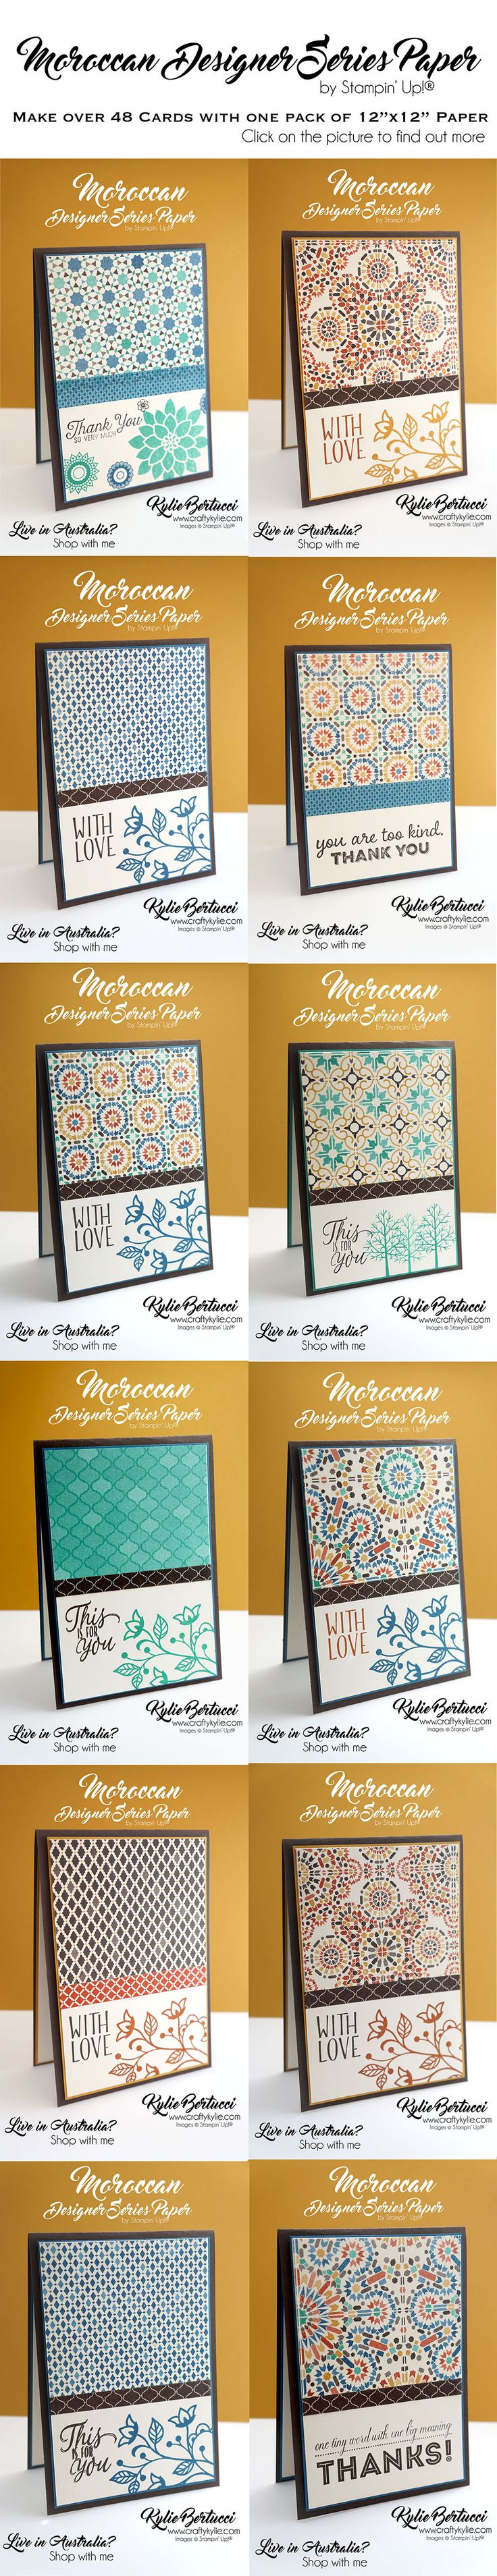 Kylie Bertucci - Moroccan Designer Series Paper. click on the picture to find out more! #stampinup #cardmaking #handmadecard #rubberstamps #stamping #kyliebertucci